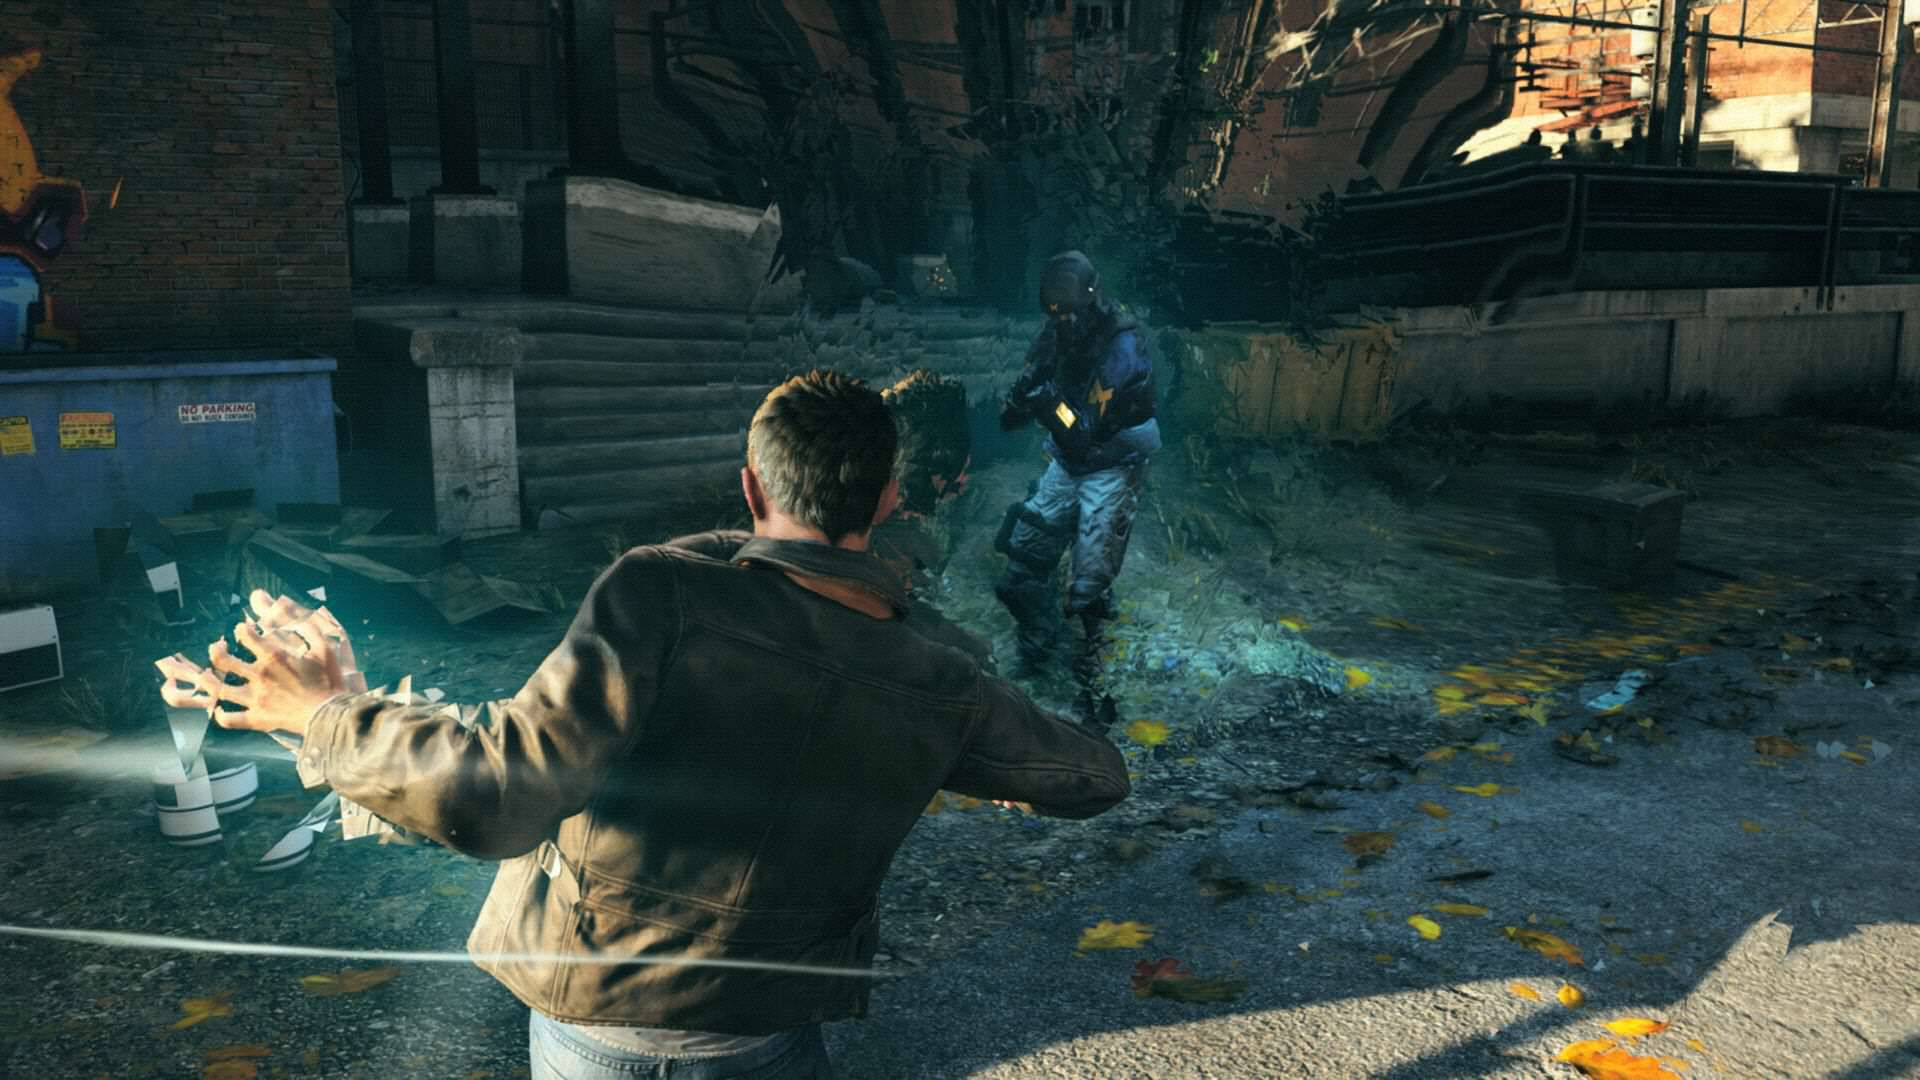 quantum break punch.0 See How Quantum Break Has Changed With This Cool Prototype Footage